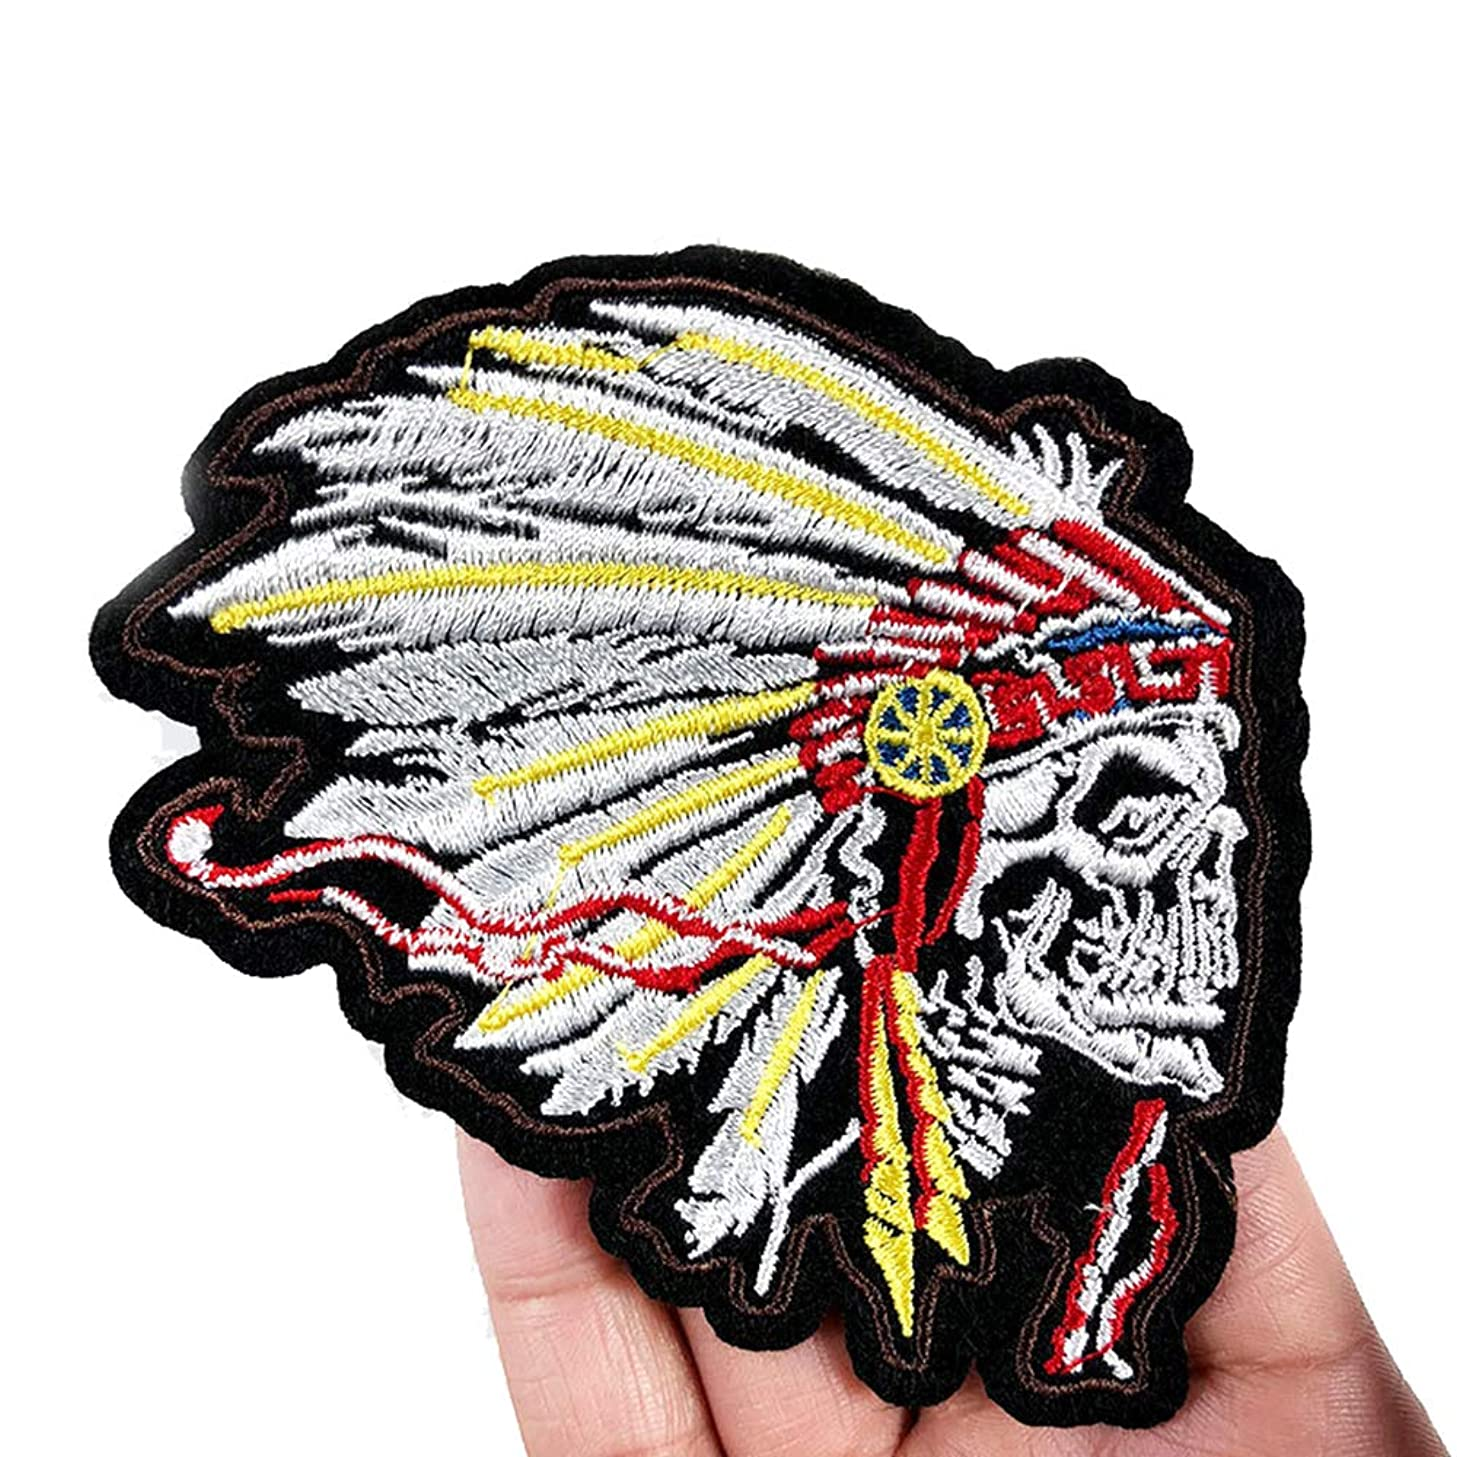 2 Pcs Skull Chief Delicate Embroidered Patches, Cute Embroidery Patches, Iron On Patches, Sew On Applique Patch,Cool Patches for Men, Women, Kids